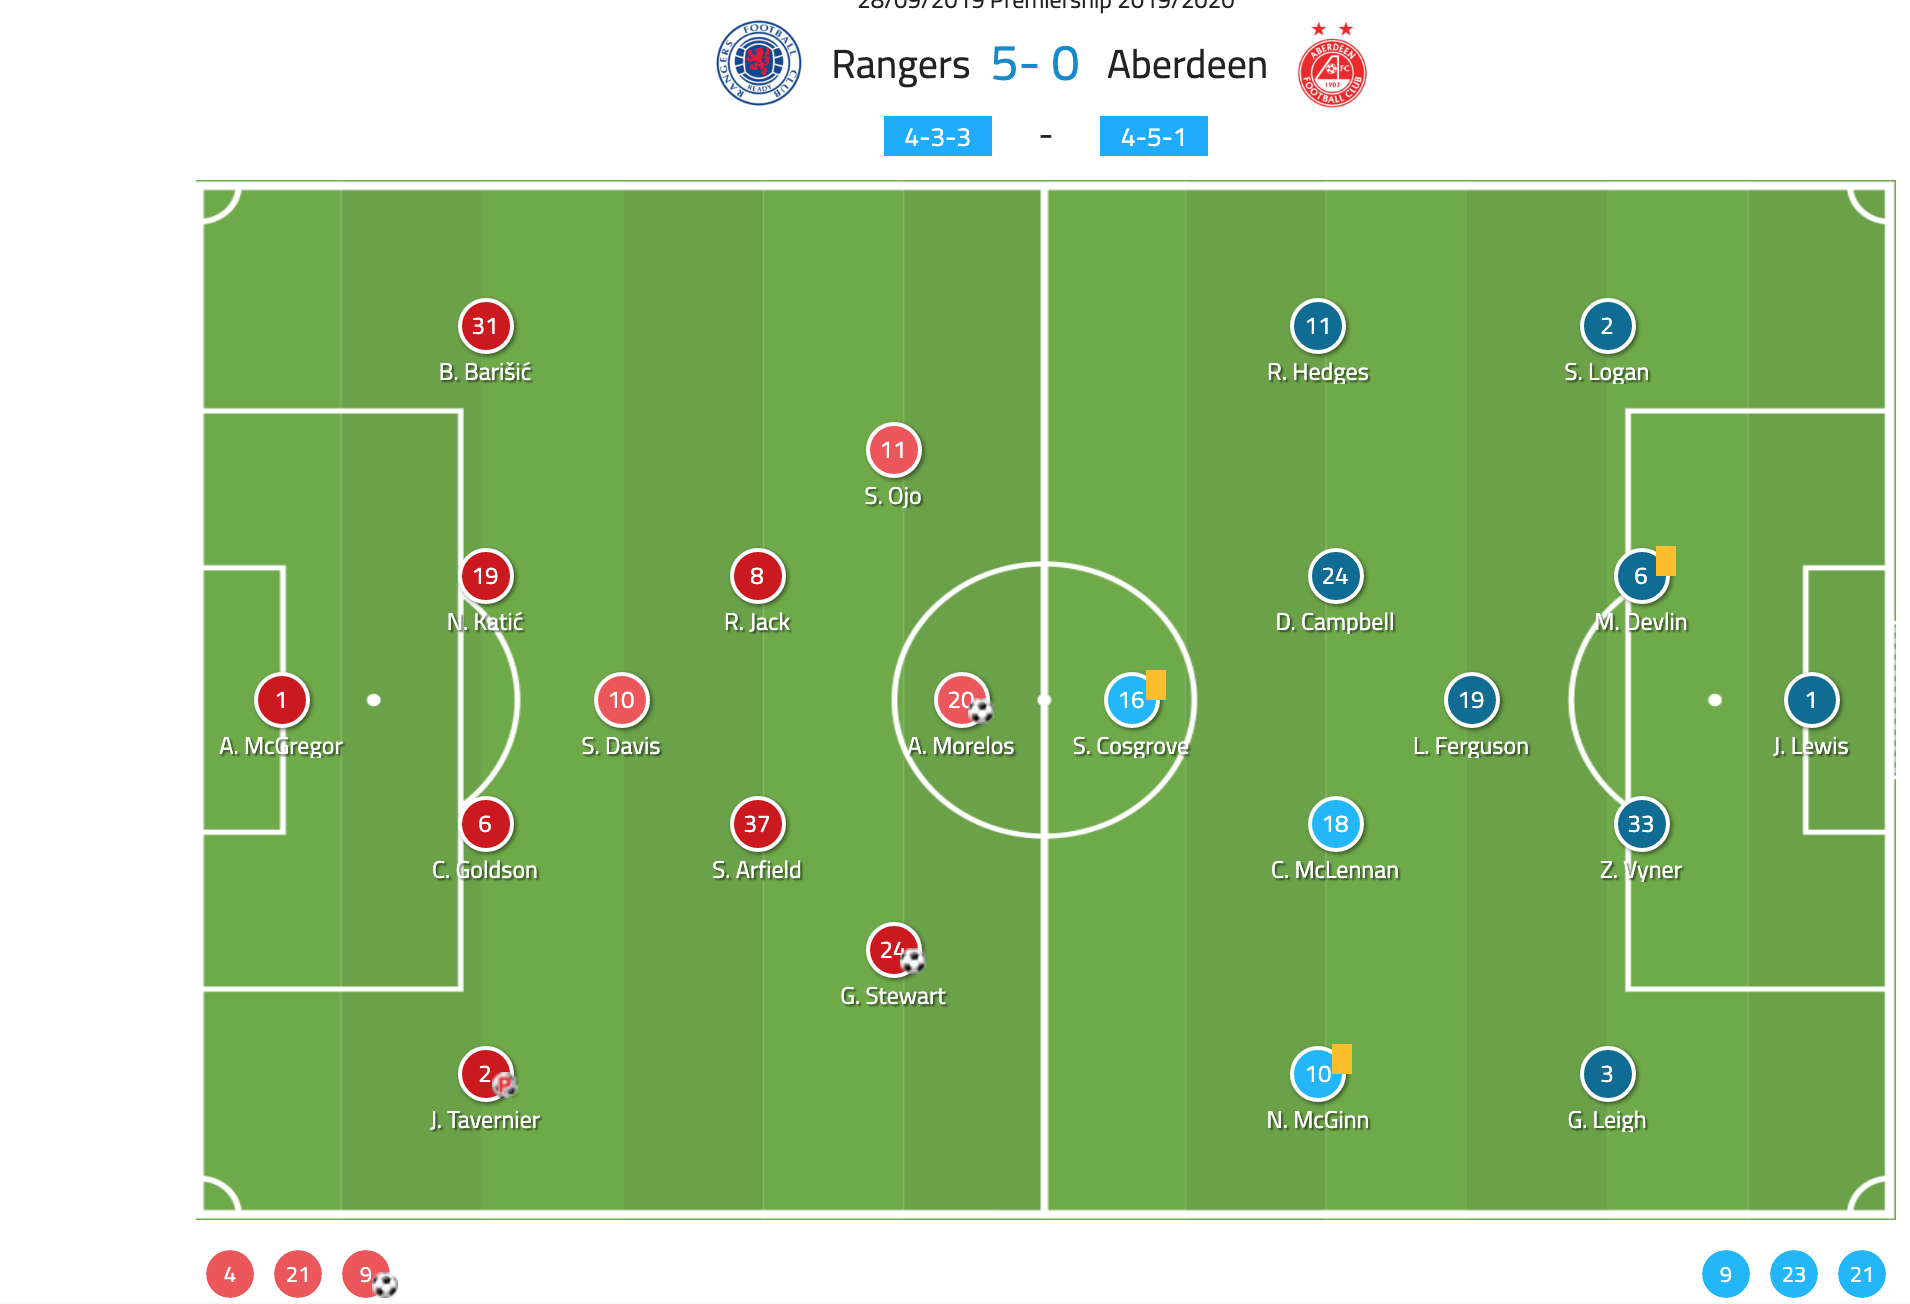 Scottish Premiership 2019/20: Rangers vs Aberdeen - tactical analysis